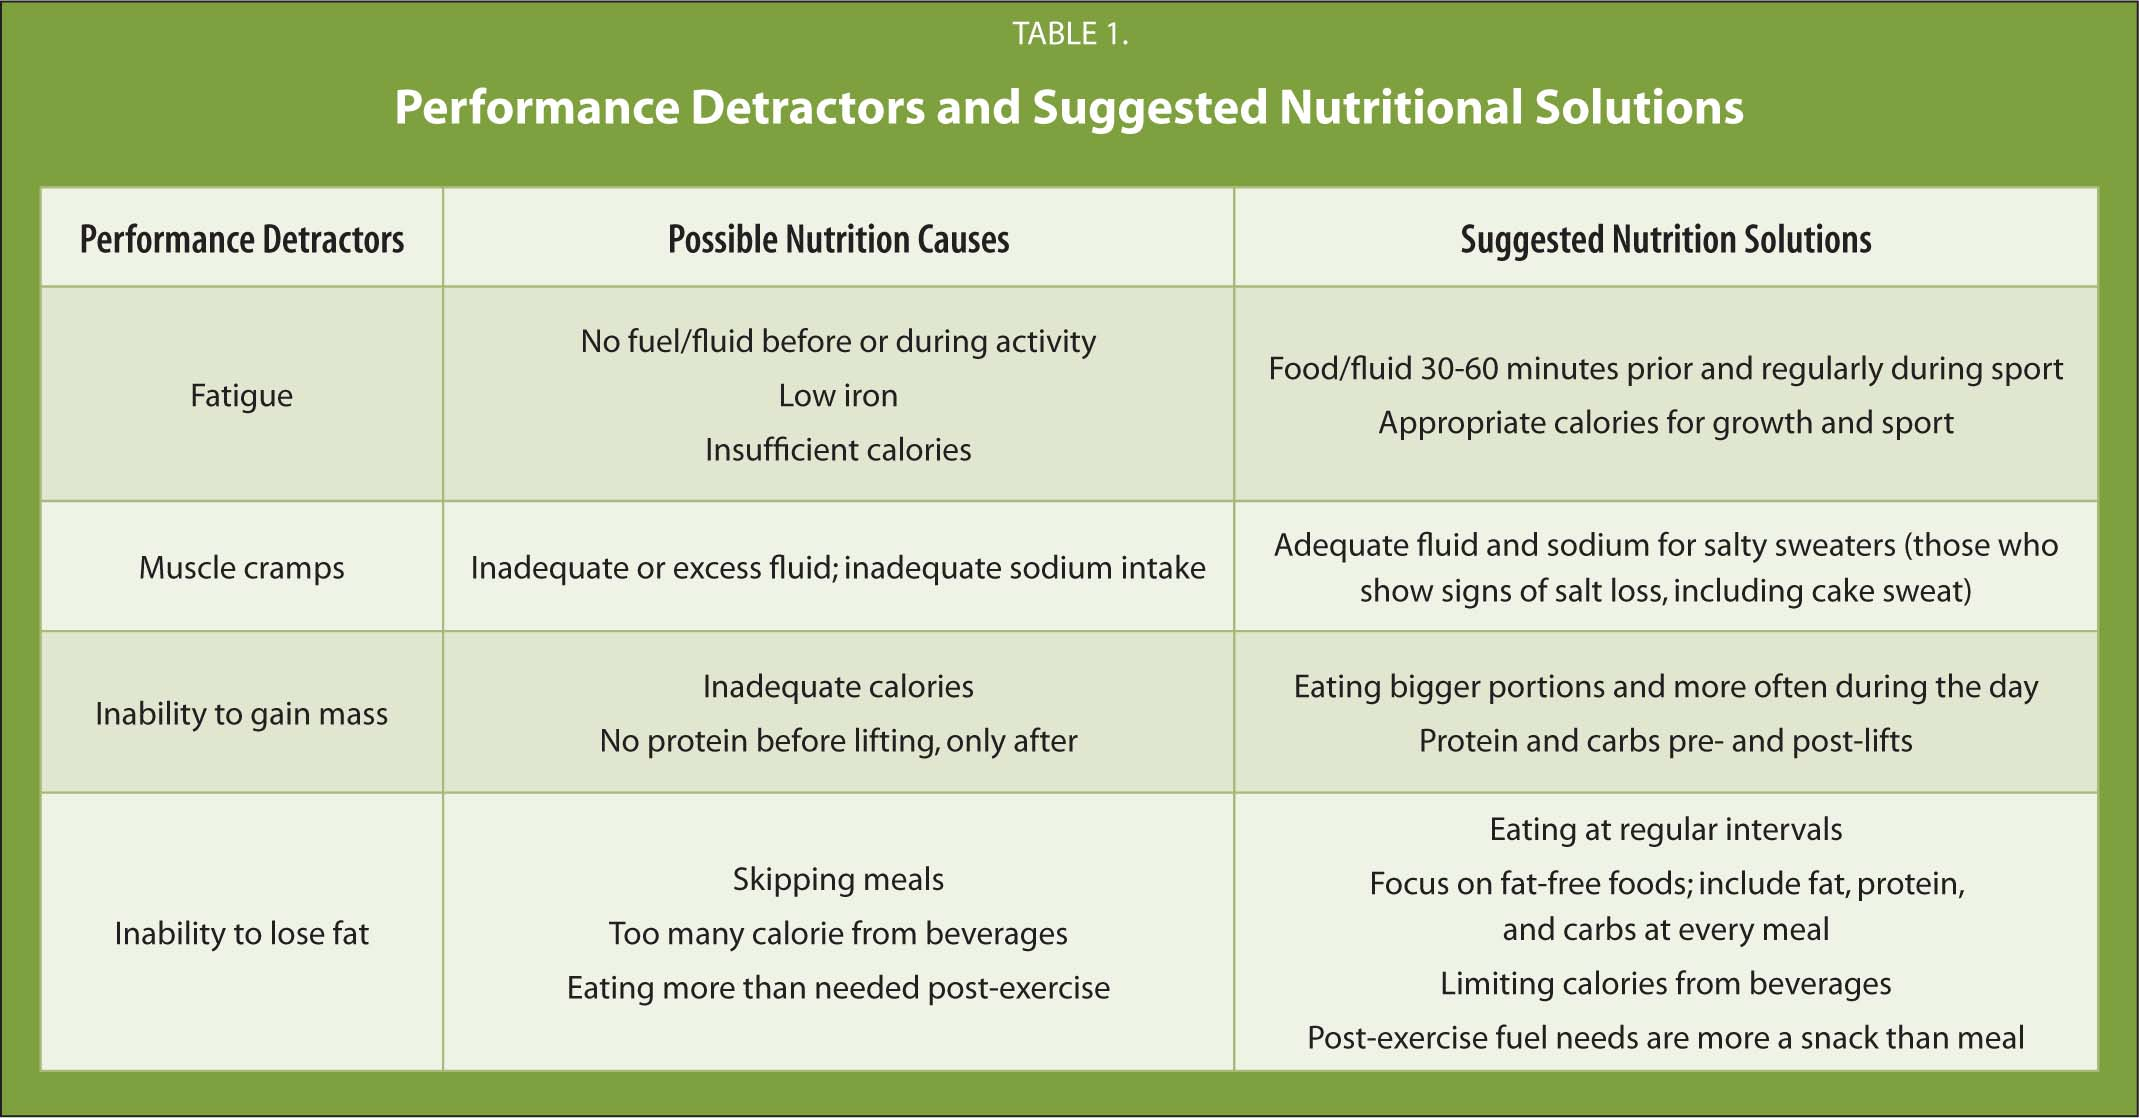 Performance Detractors and Suggested Nutritional Solutions